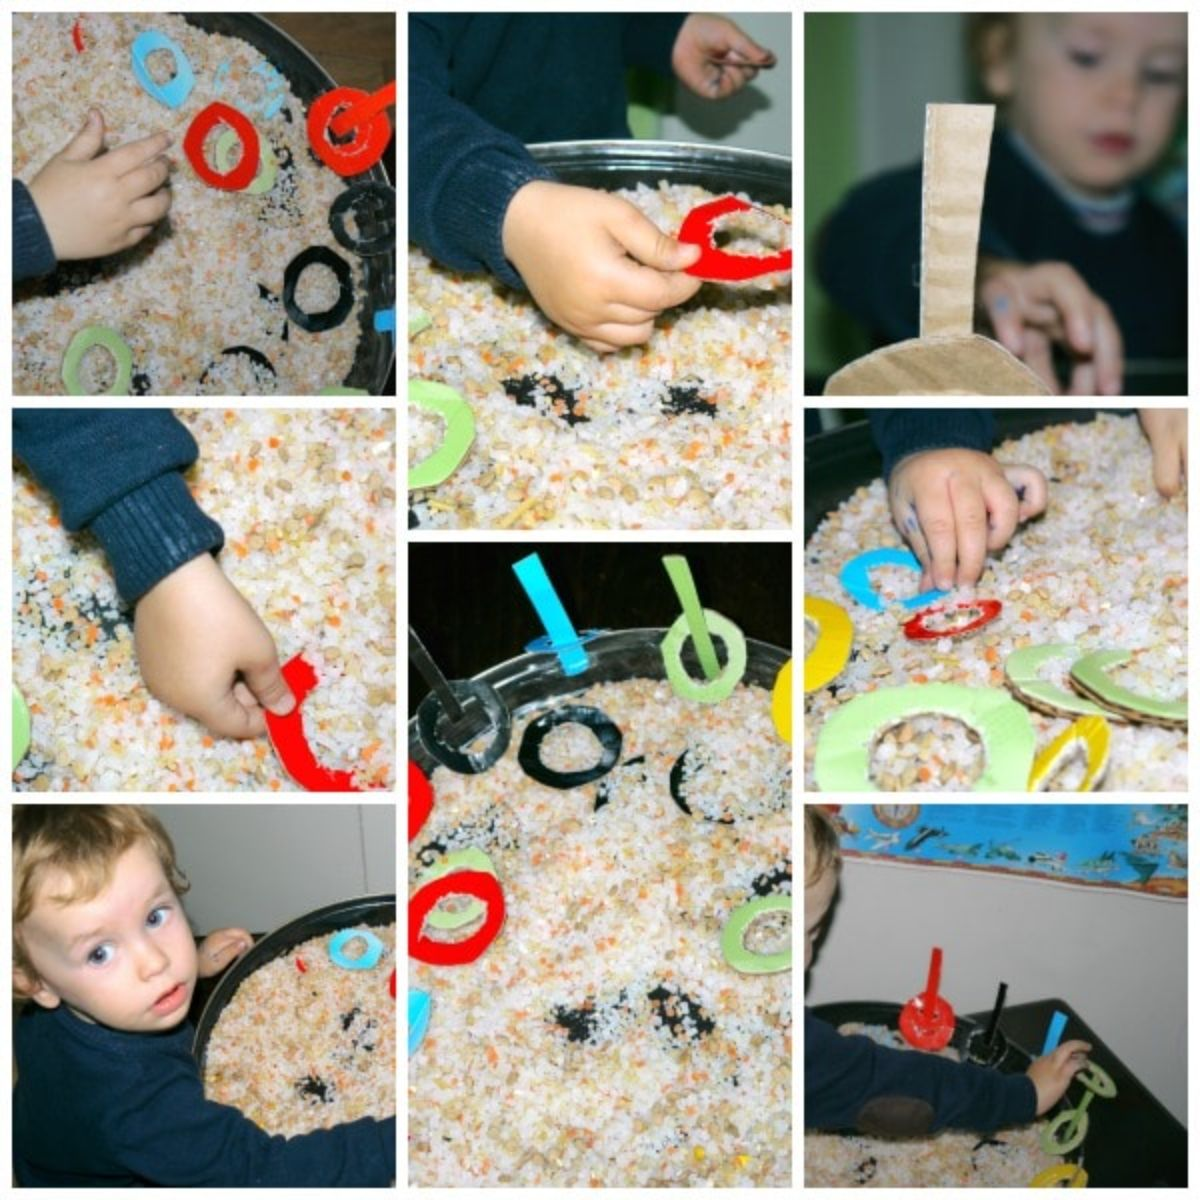 a montage of photos of a small boy digging into a tray of cereal and cardboard colored rings